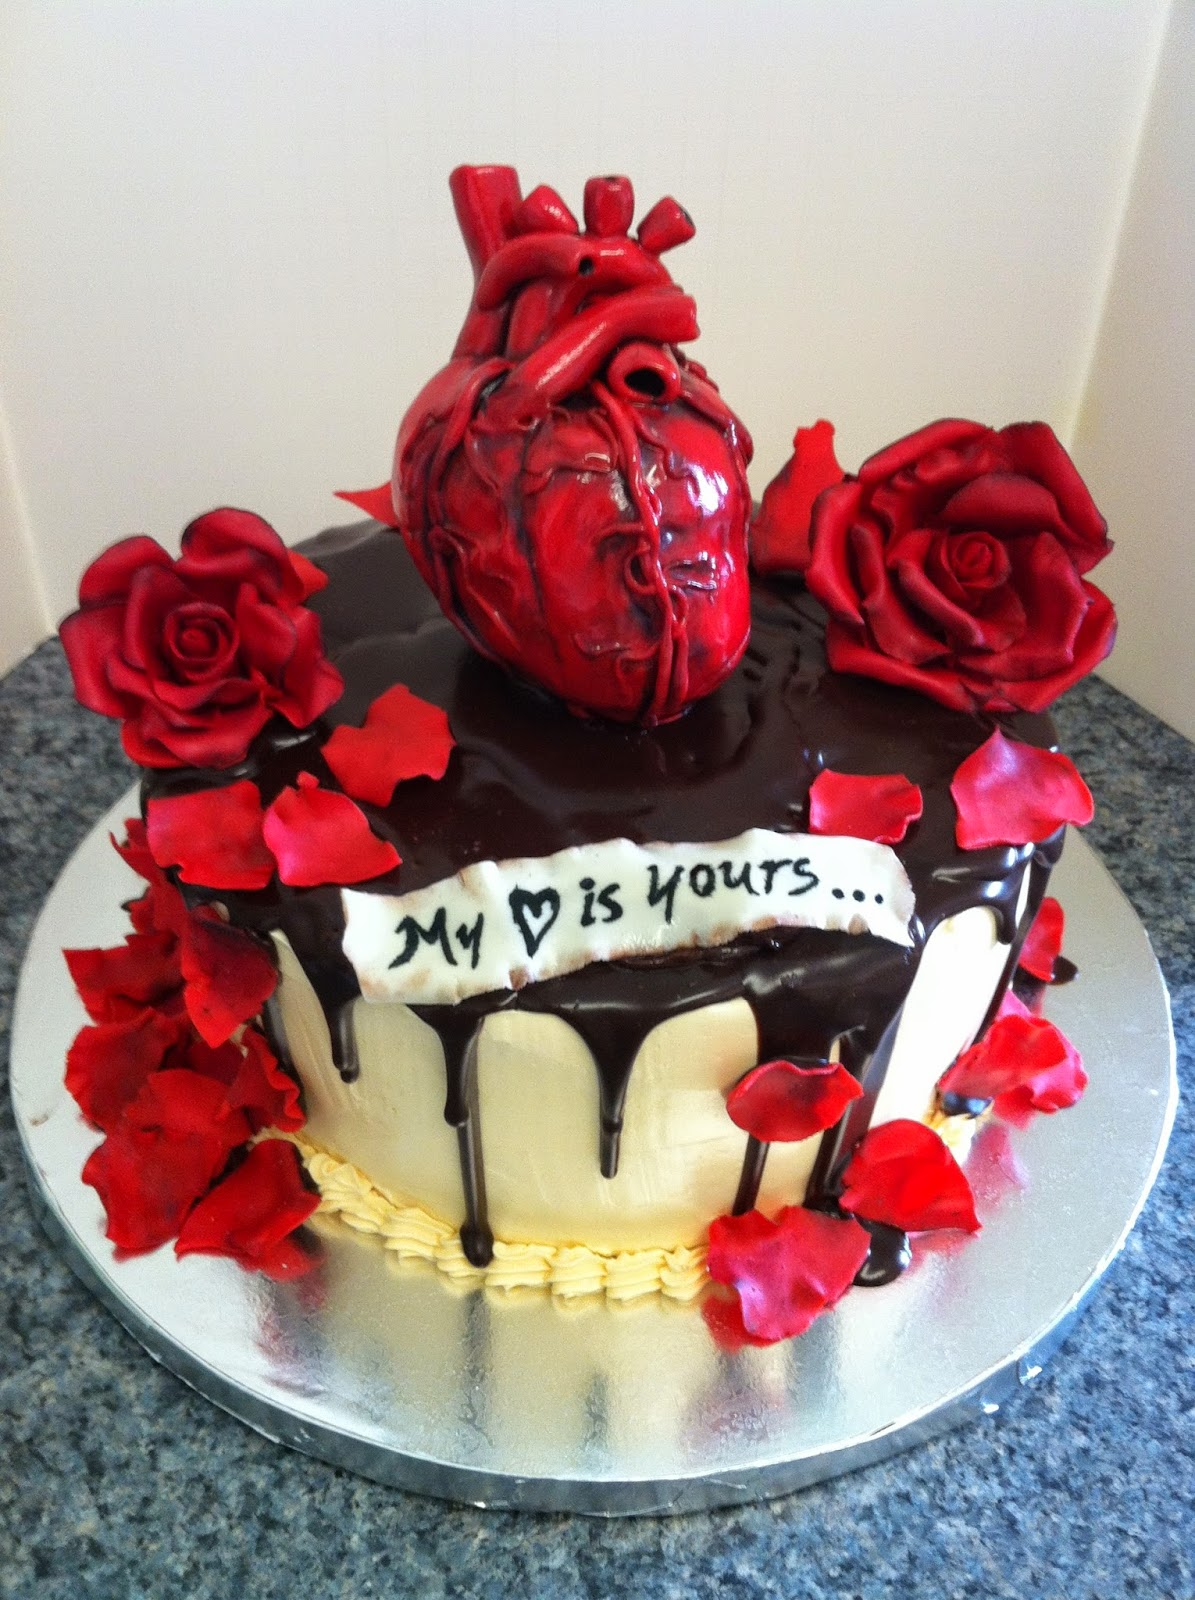 Hogan's Sweet Art: Valentines' Day Heart Cake